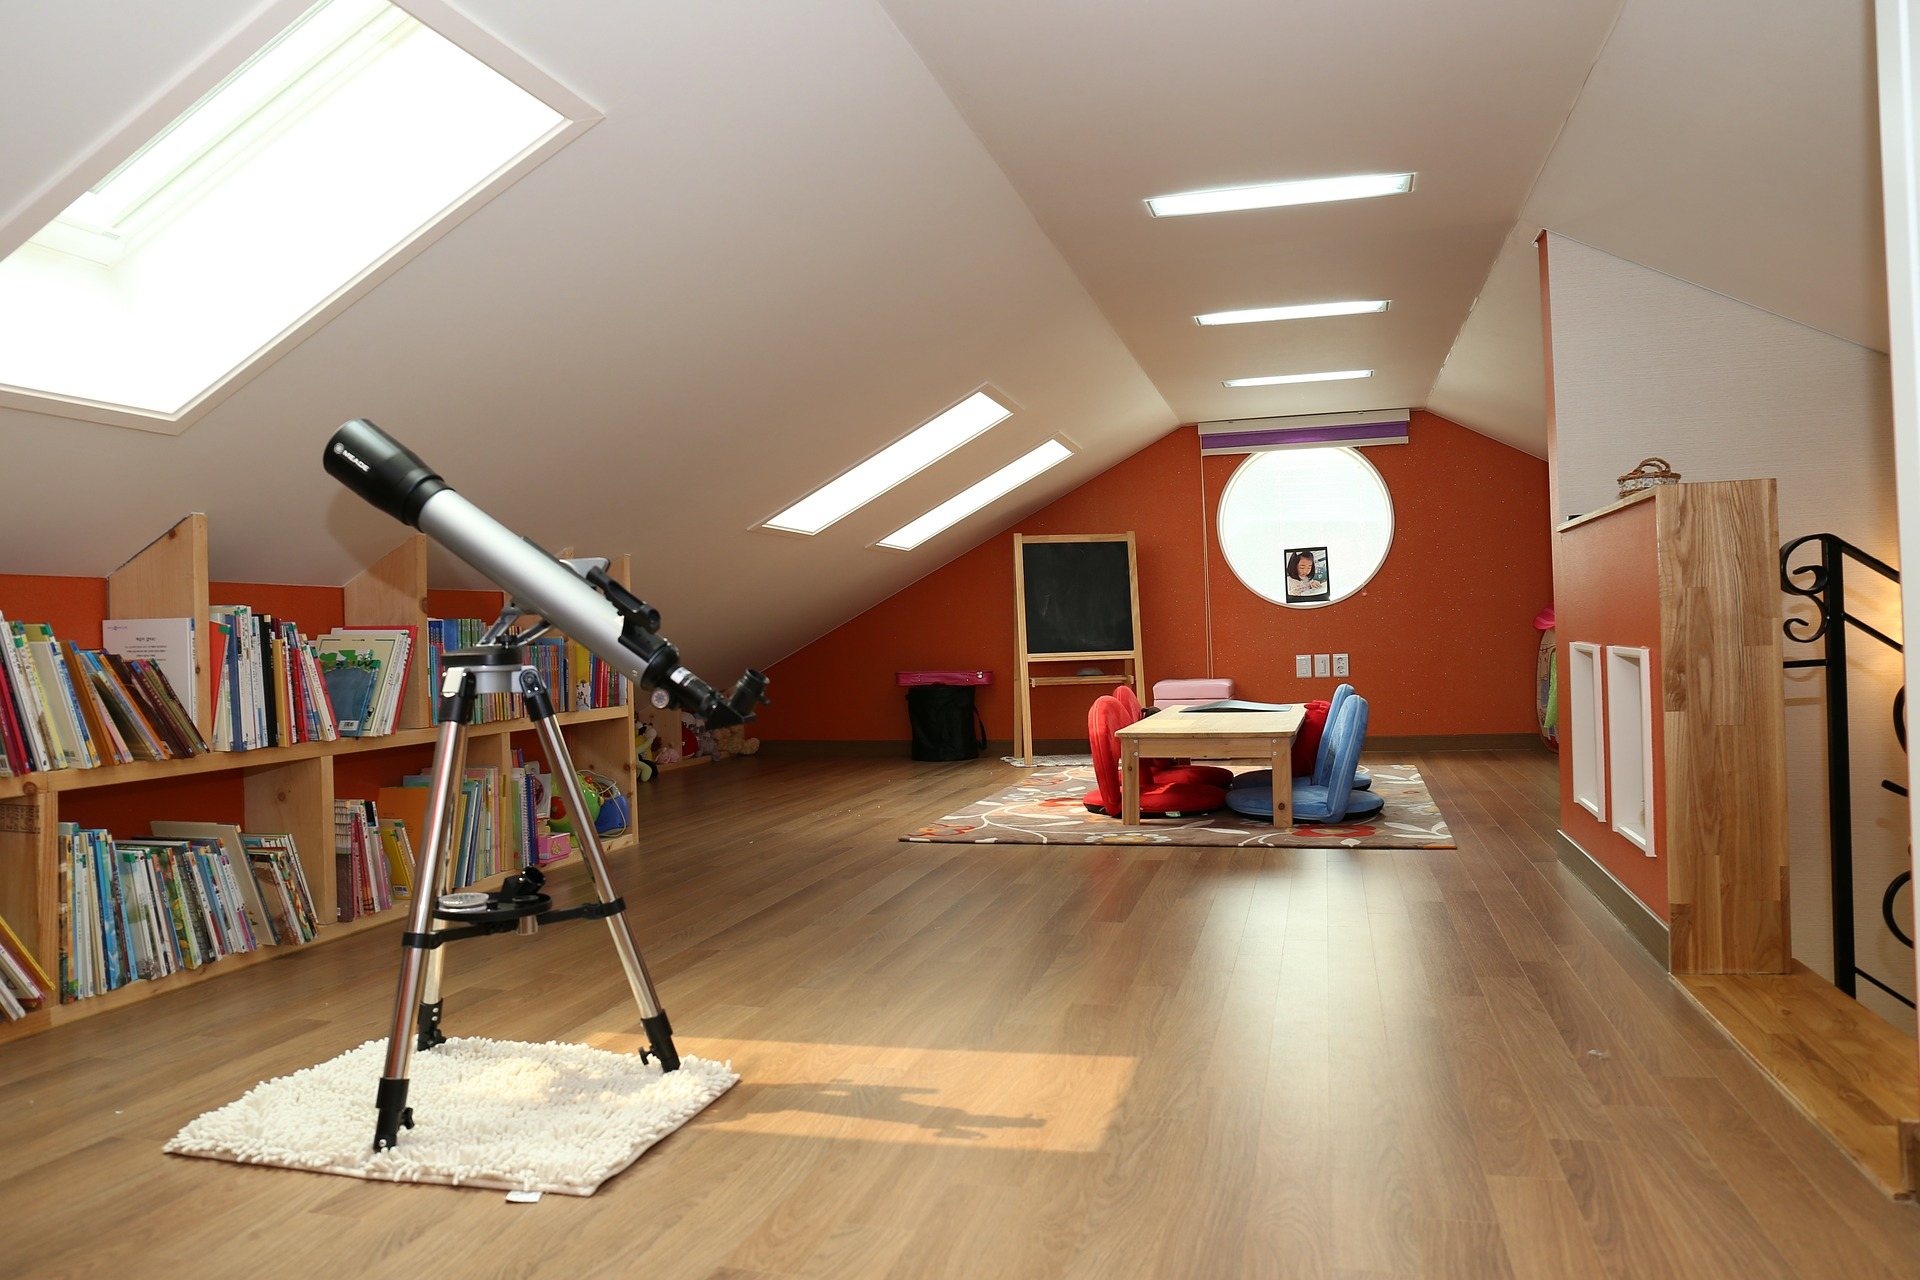 Loft Conversions - South-West London | A Guide to Converting an Attic